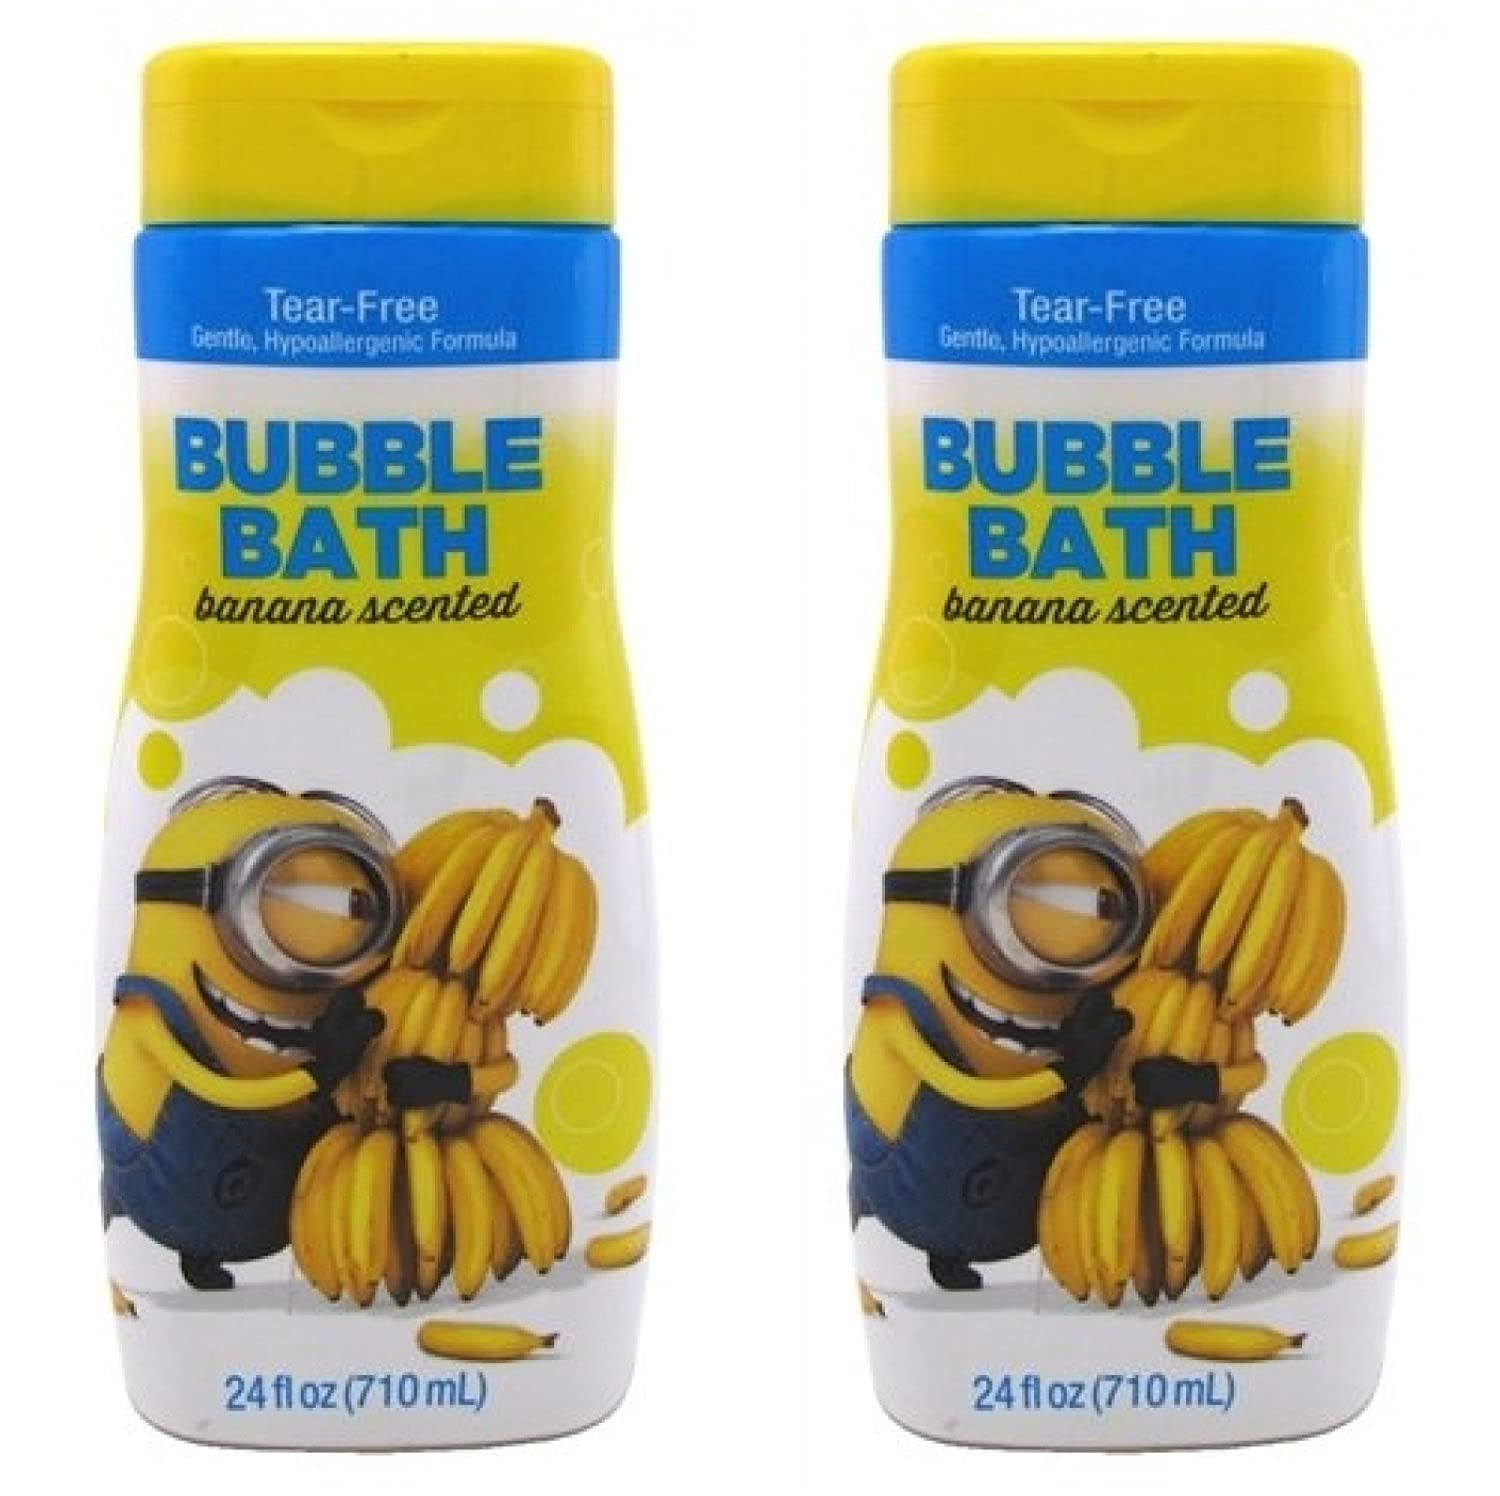 Minions Bubble Bath Banana Scented 24 Ounce (709ml) (2 Pack) B00T56MCQ0